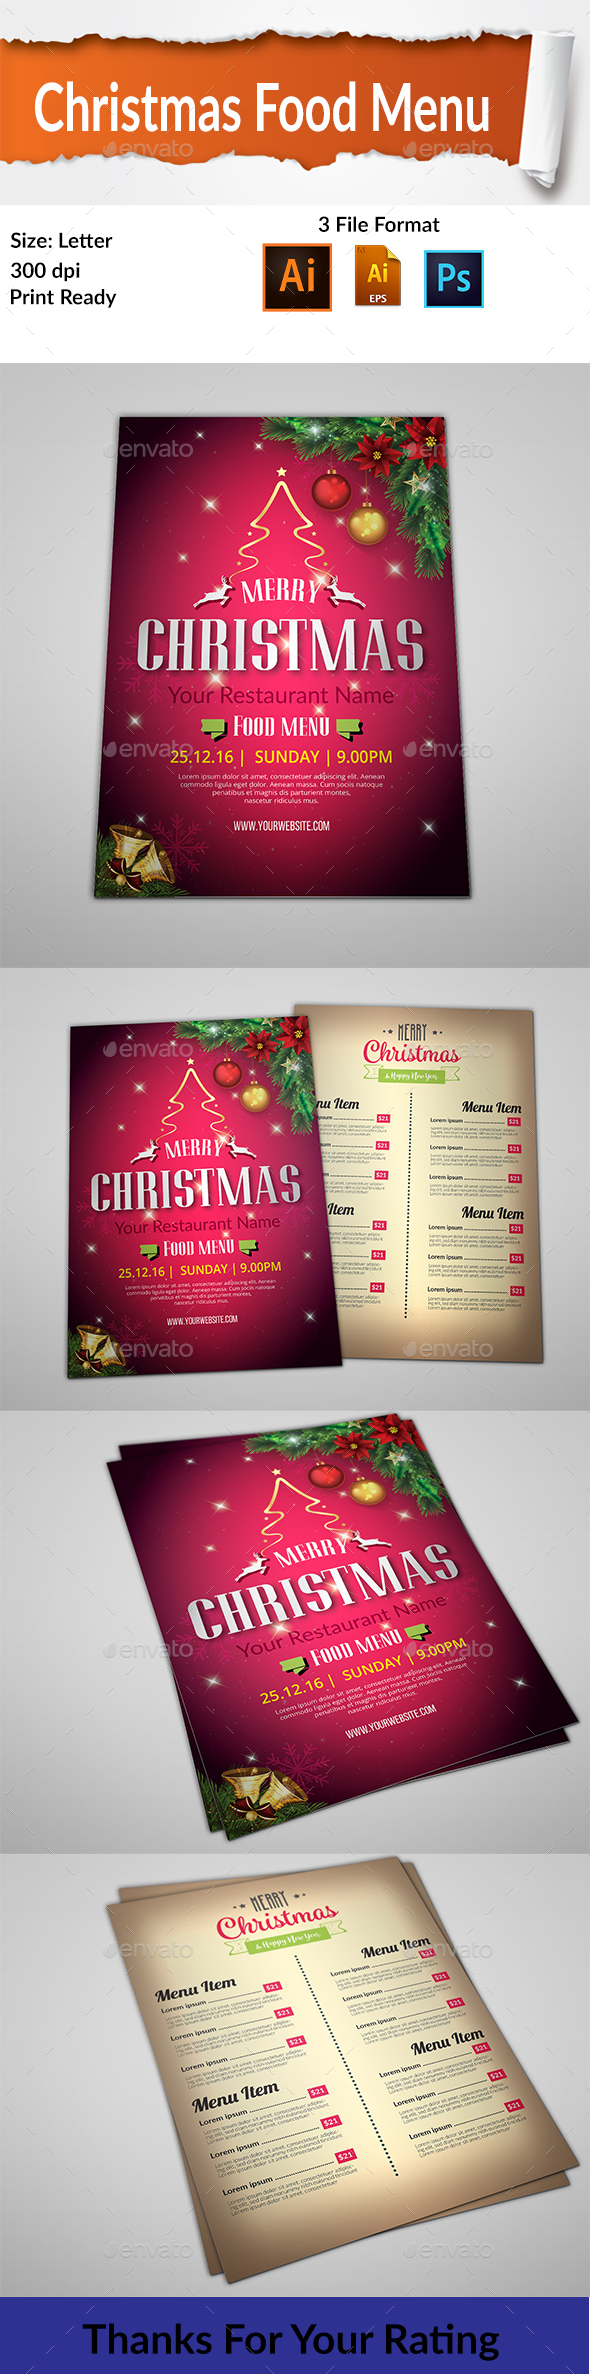 Christmas Food Menu - Food Menus Print Templates